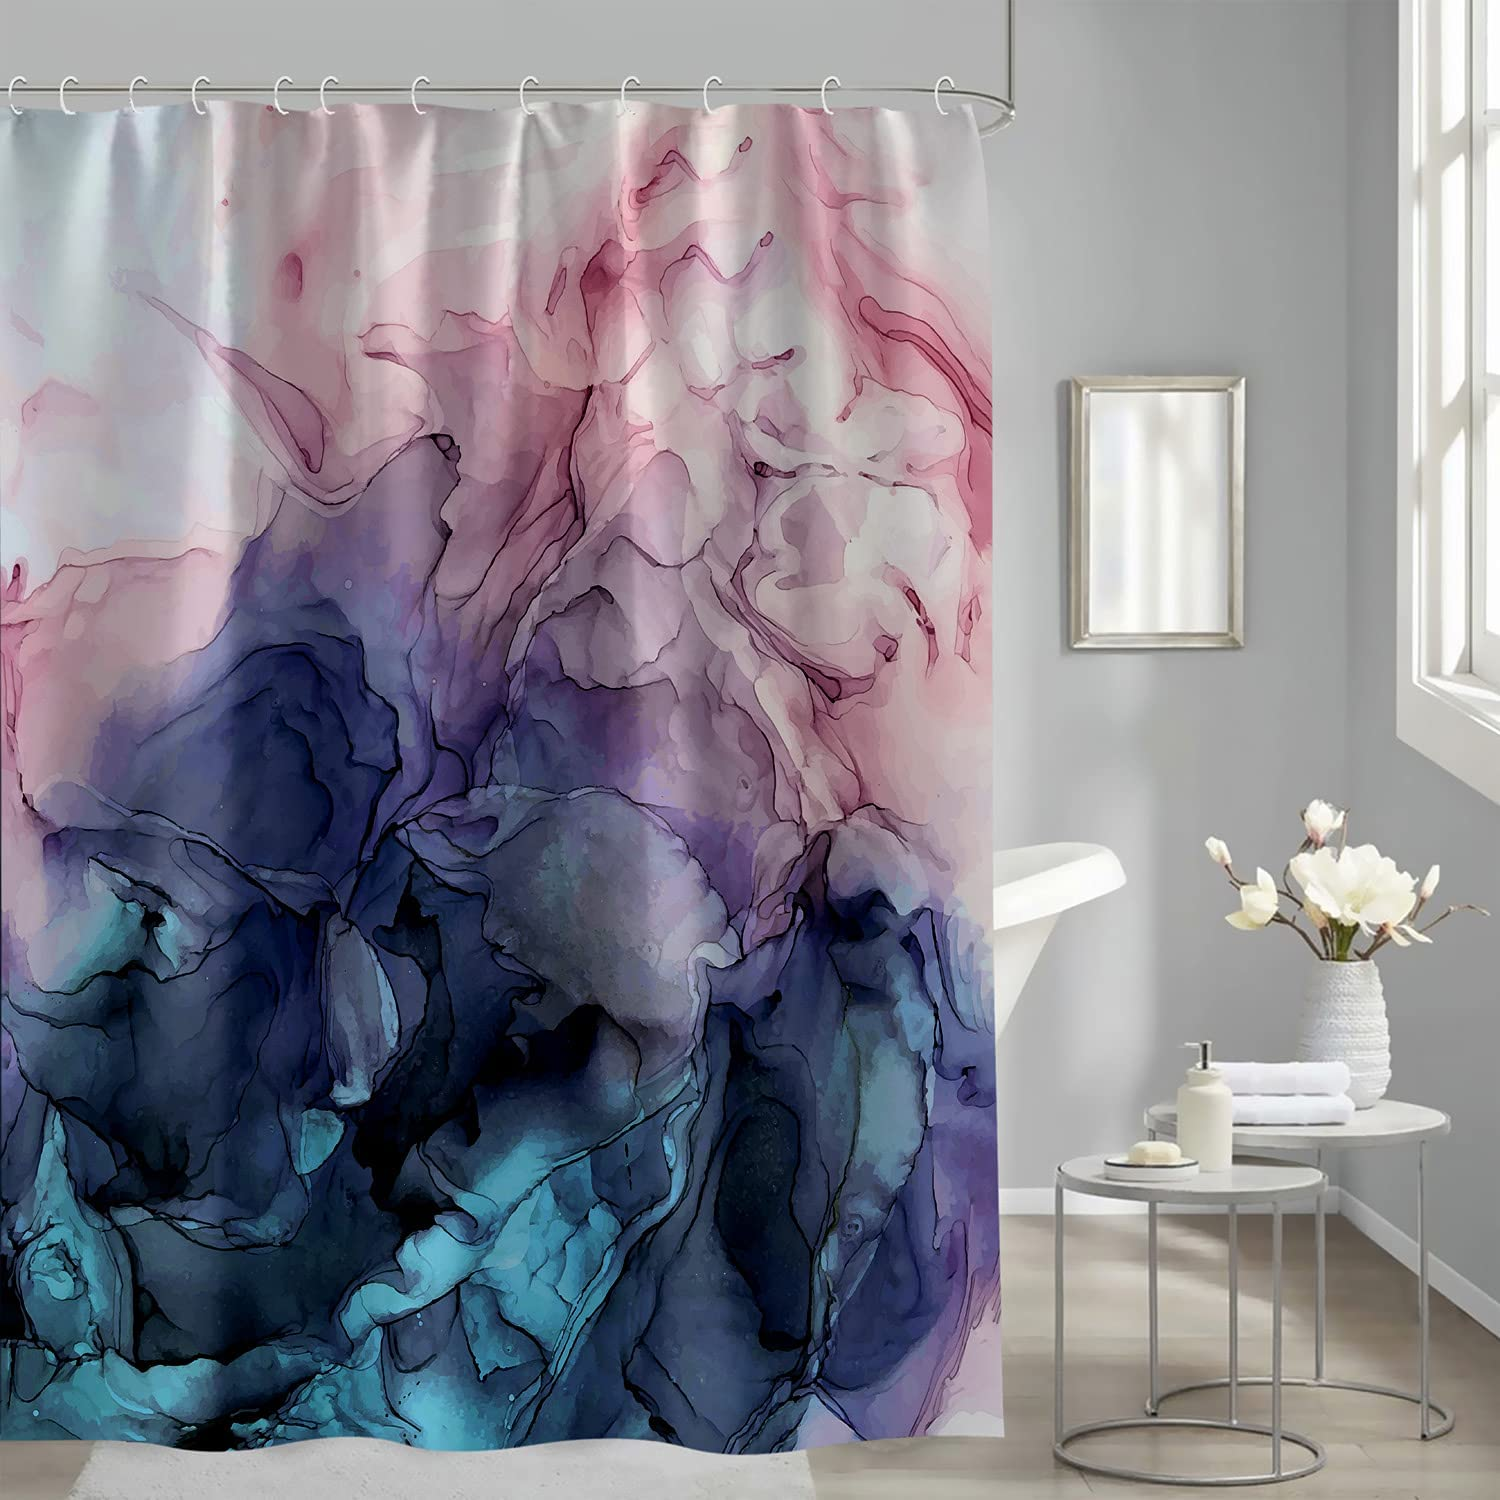 Abstract Shower Curtain Blush and Atlanta Max 86% OFF Mall Pastel Blue Ombre Ink